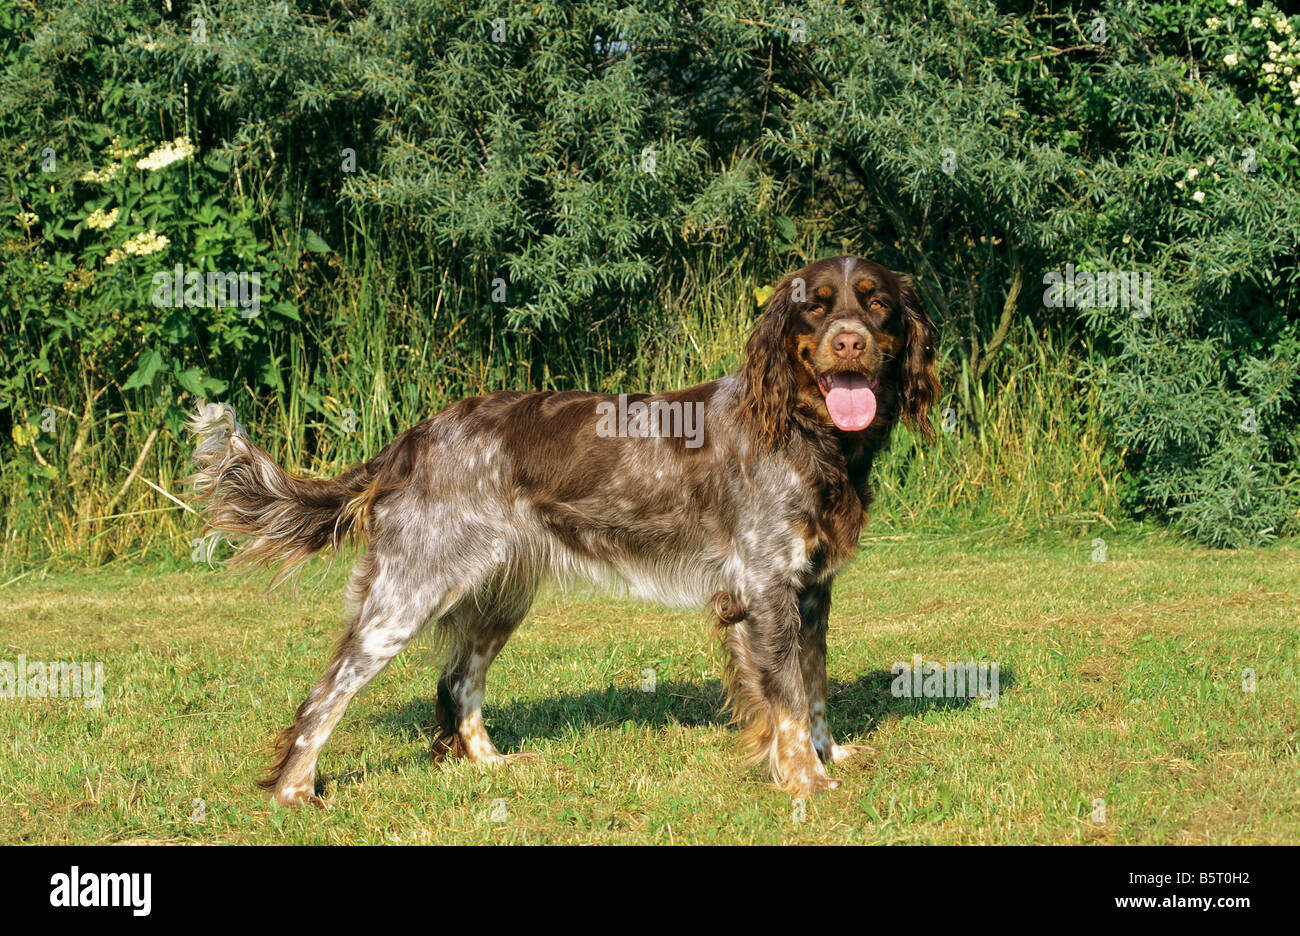 Picardy Spaniel - standing on meadow Stock Photo